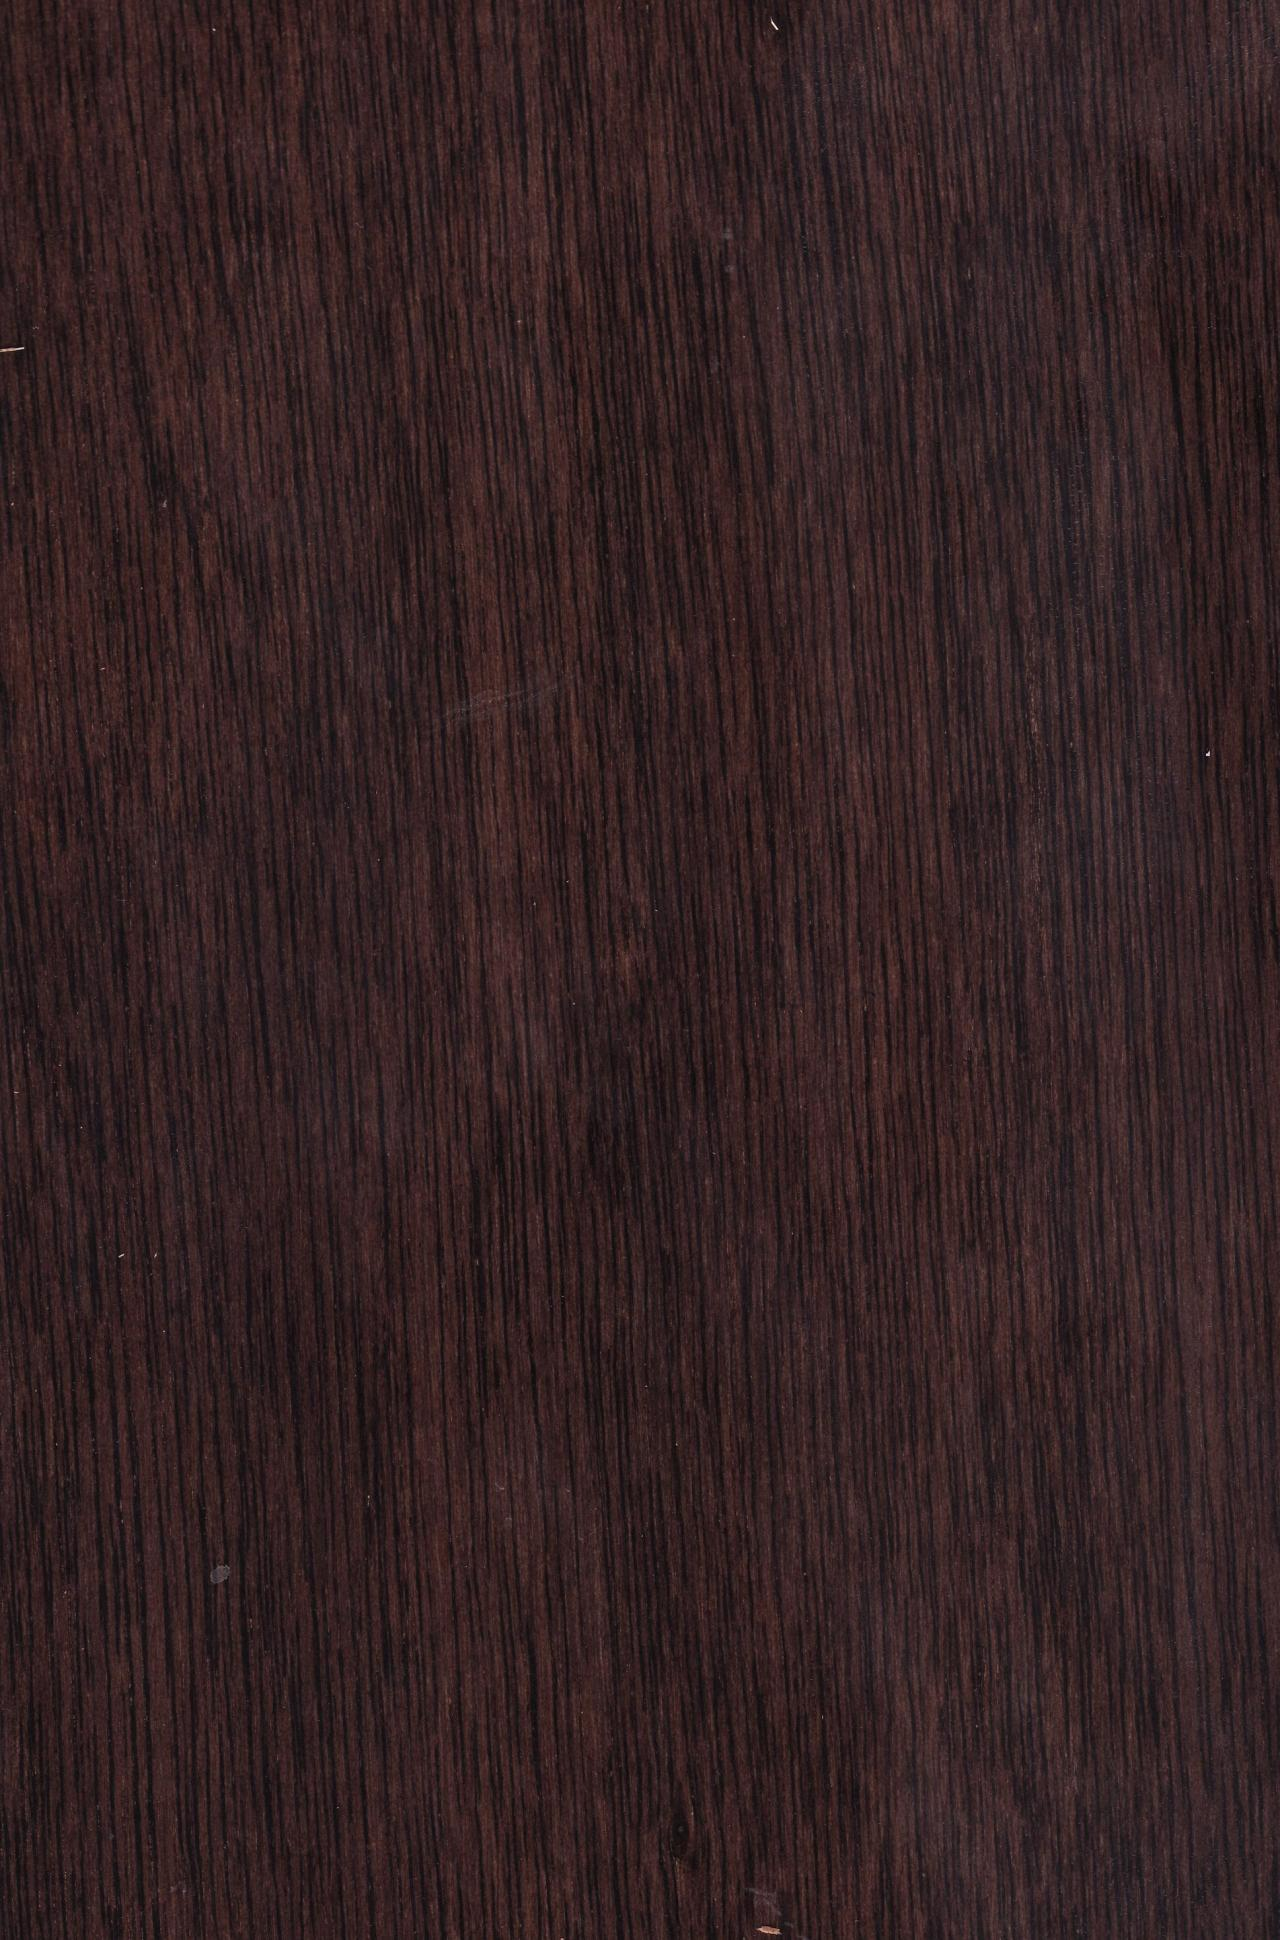 polypalm wood products sdn  bhd